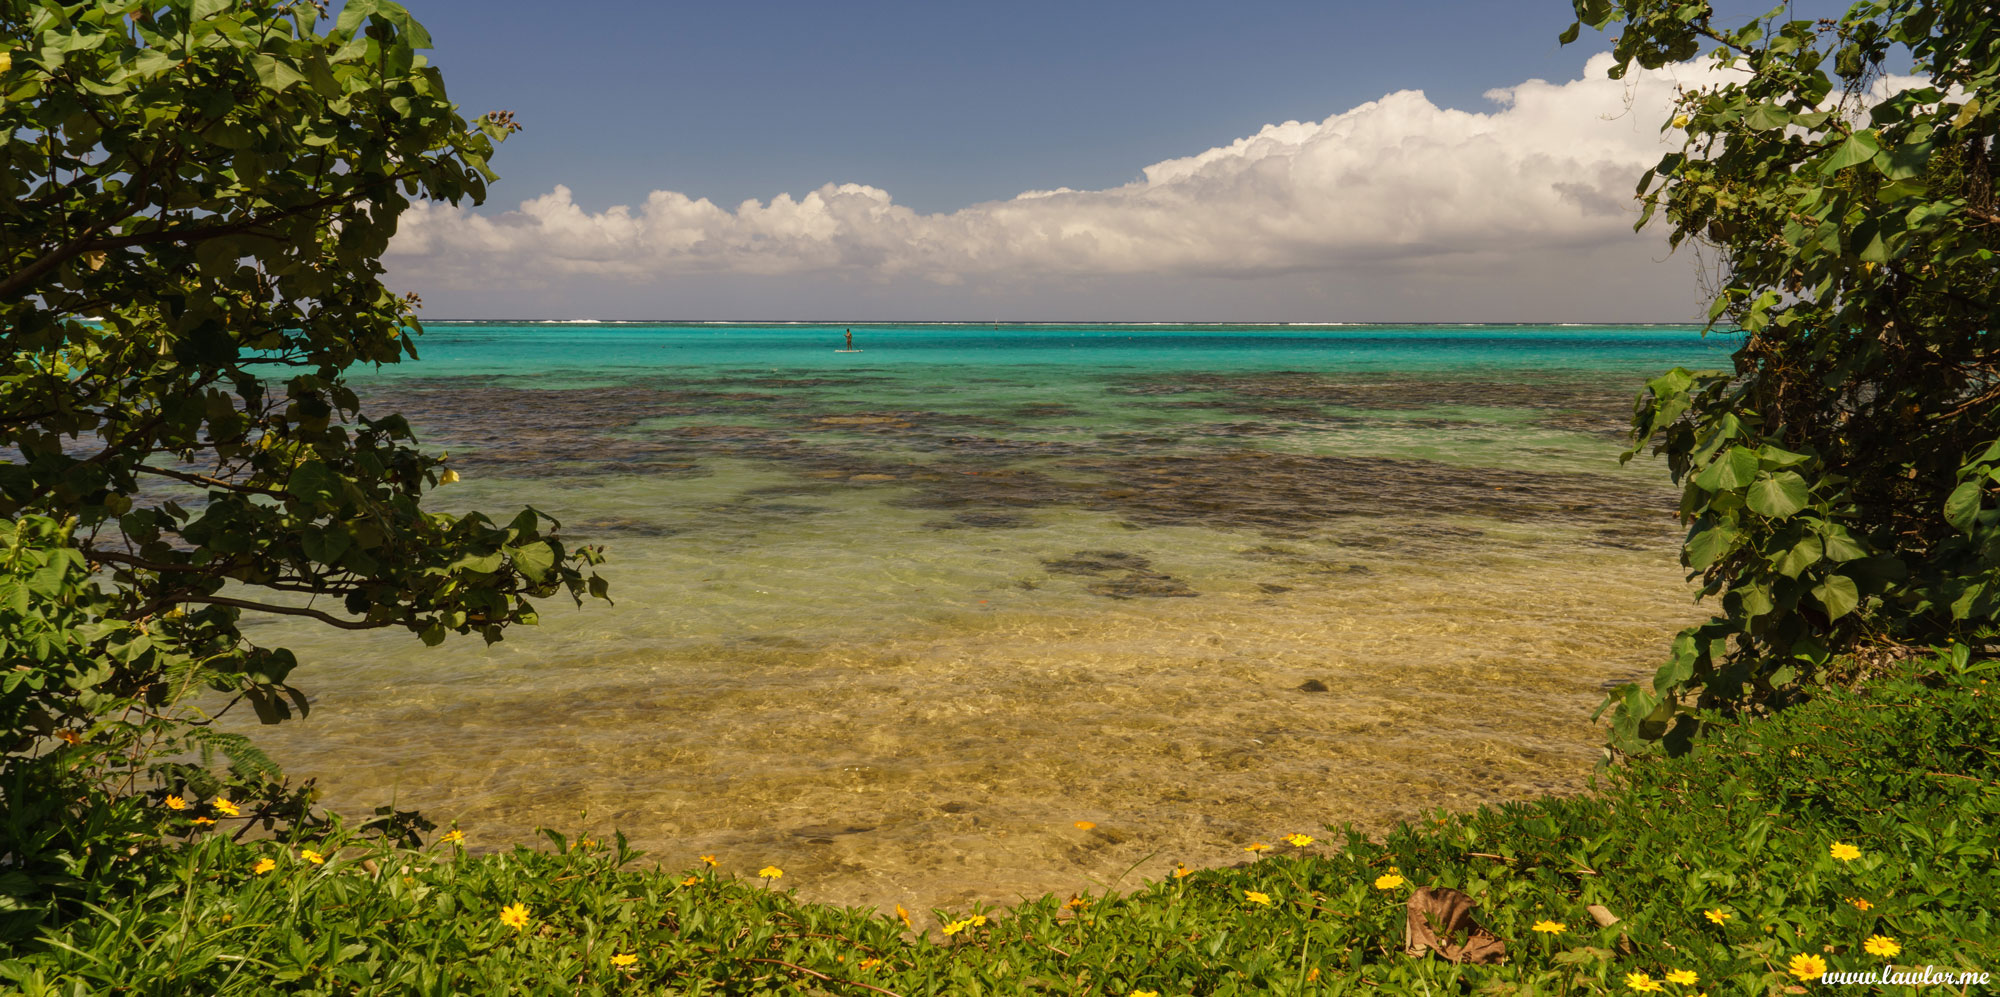 Moorea Lagoon - French Polynesia, Free Landscape Photography, free landscape photos, free nature images, free HD images, free high definition stock images, free stock images download, desktop background, desktop wallpapers, free screensaver, landscape photography